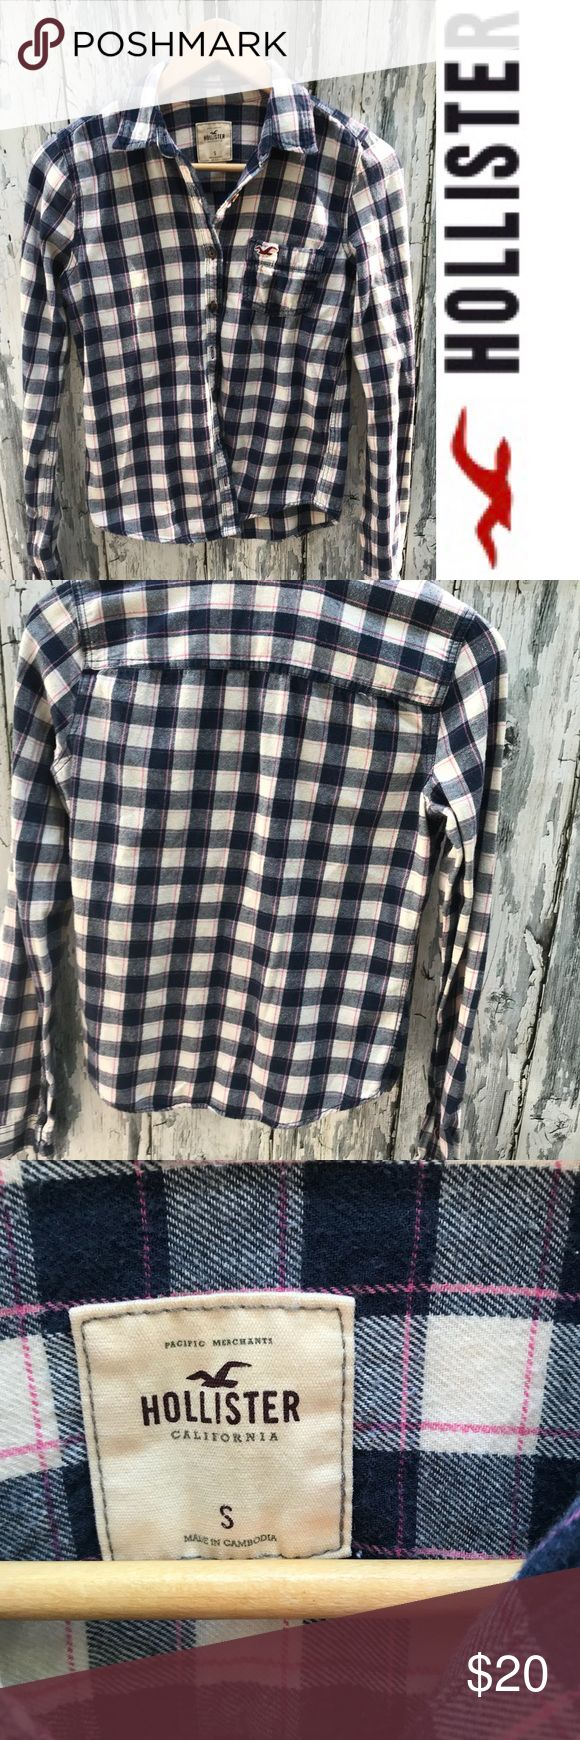 Hollister button down flannel Hollister button down flannel  Gently used  Good condition  No rips tears or stains  tags: fall fashion, winter shirts, grunge, 90's style, casual sweater, hollister, holiday sweater, mix and match, fall clothes, warm shirt, holiday, gifts Hollister Tops Button Down Shirts